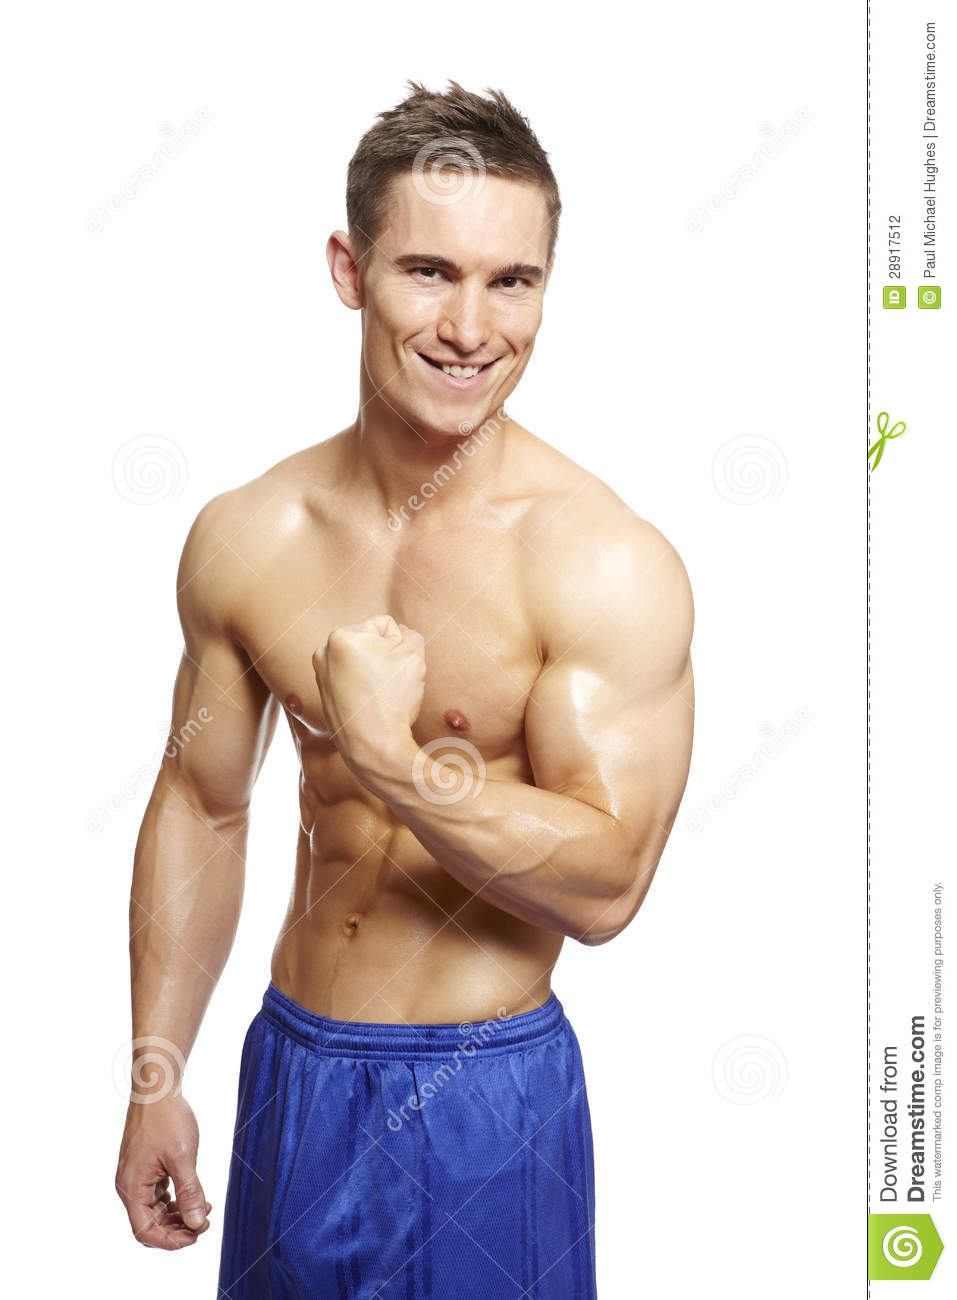 ... Photography: Muscular young man flexing arm muscles in sports outfit